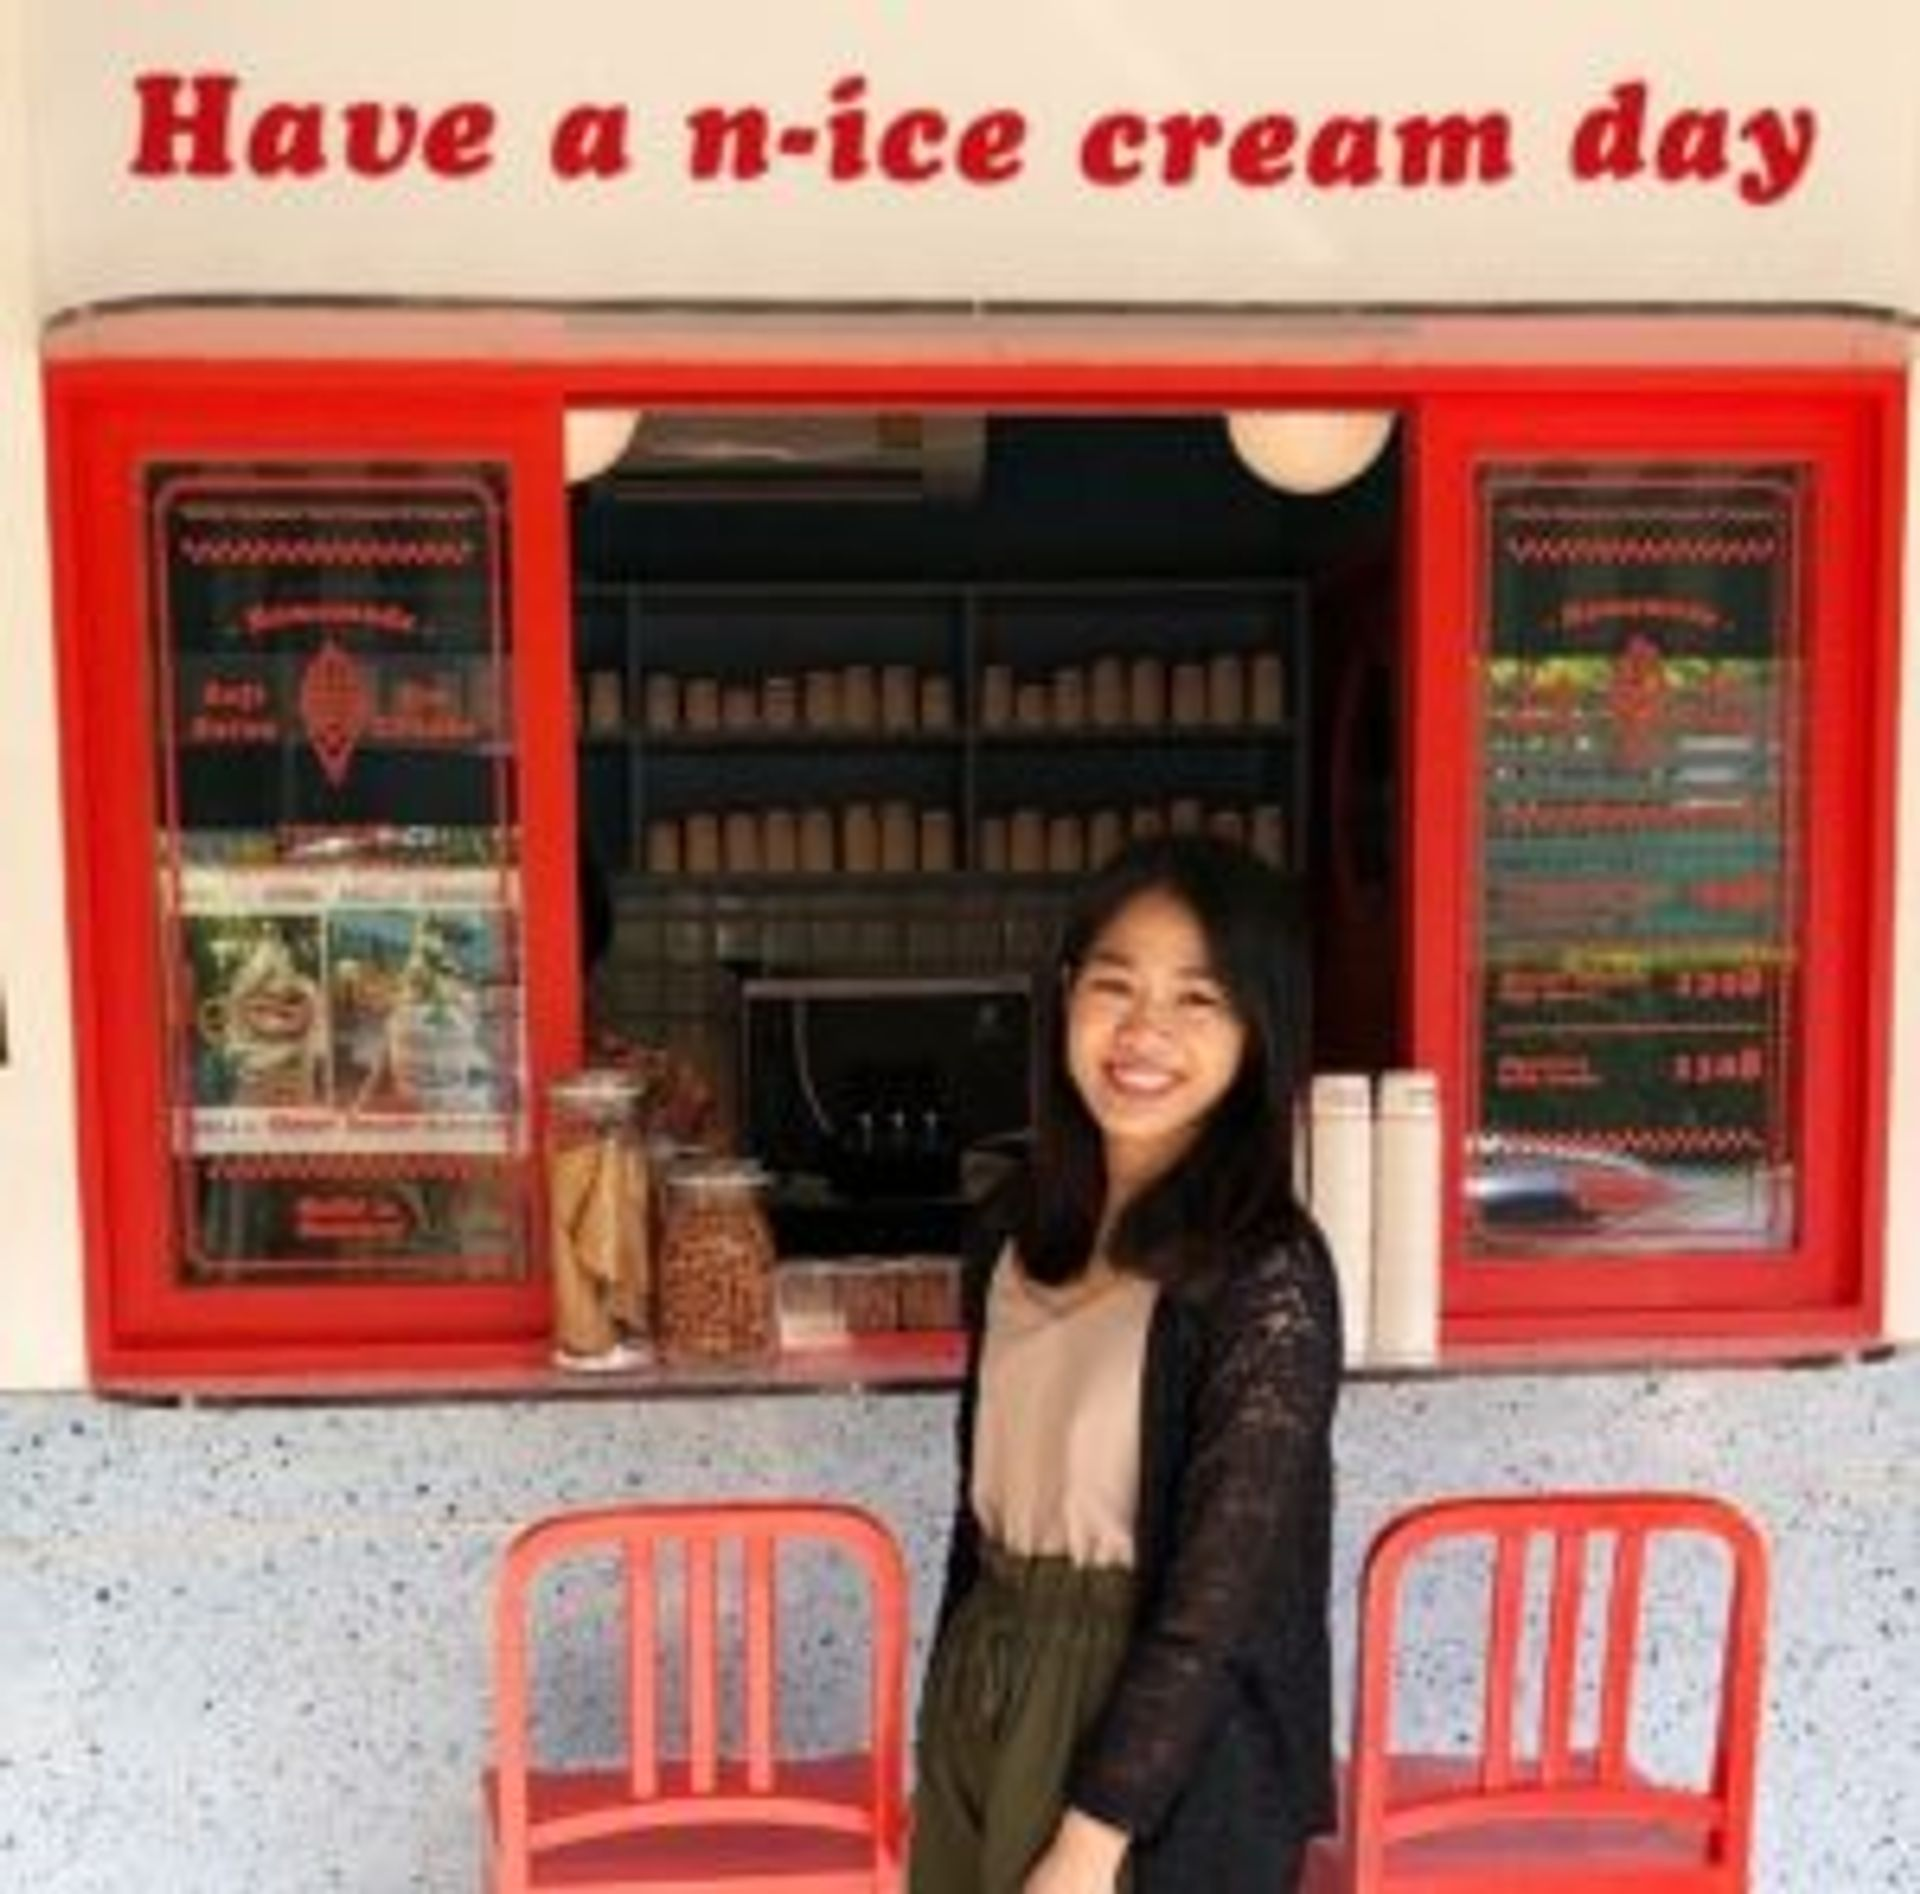 Arisa standing in front of a small ice-cream shop. The shop has a sign that reads 'Have a n-ice cream day'.